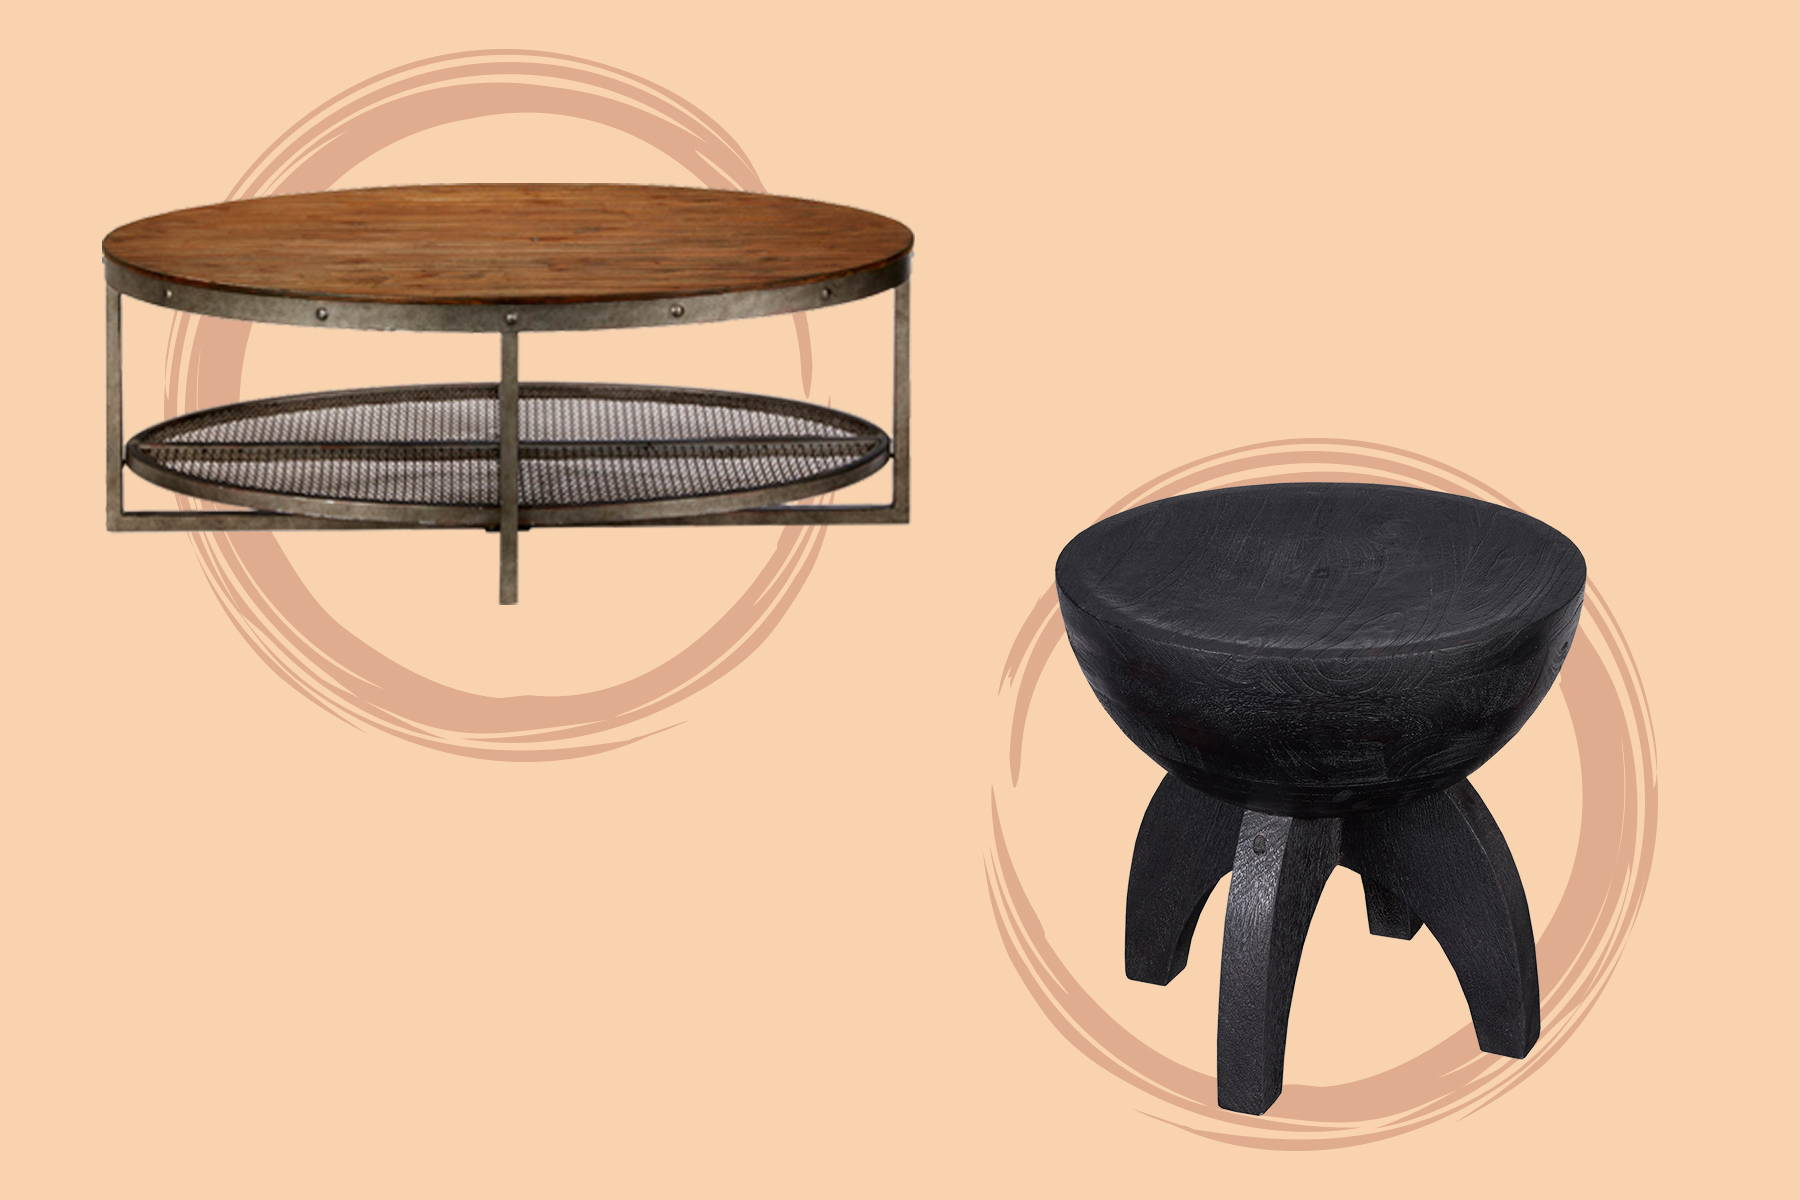 solid wood black side table and a round table